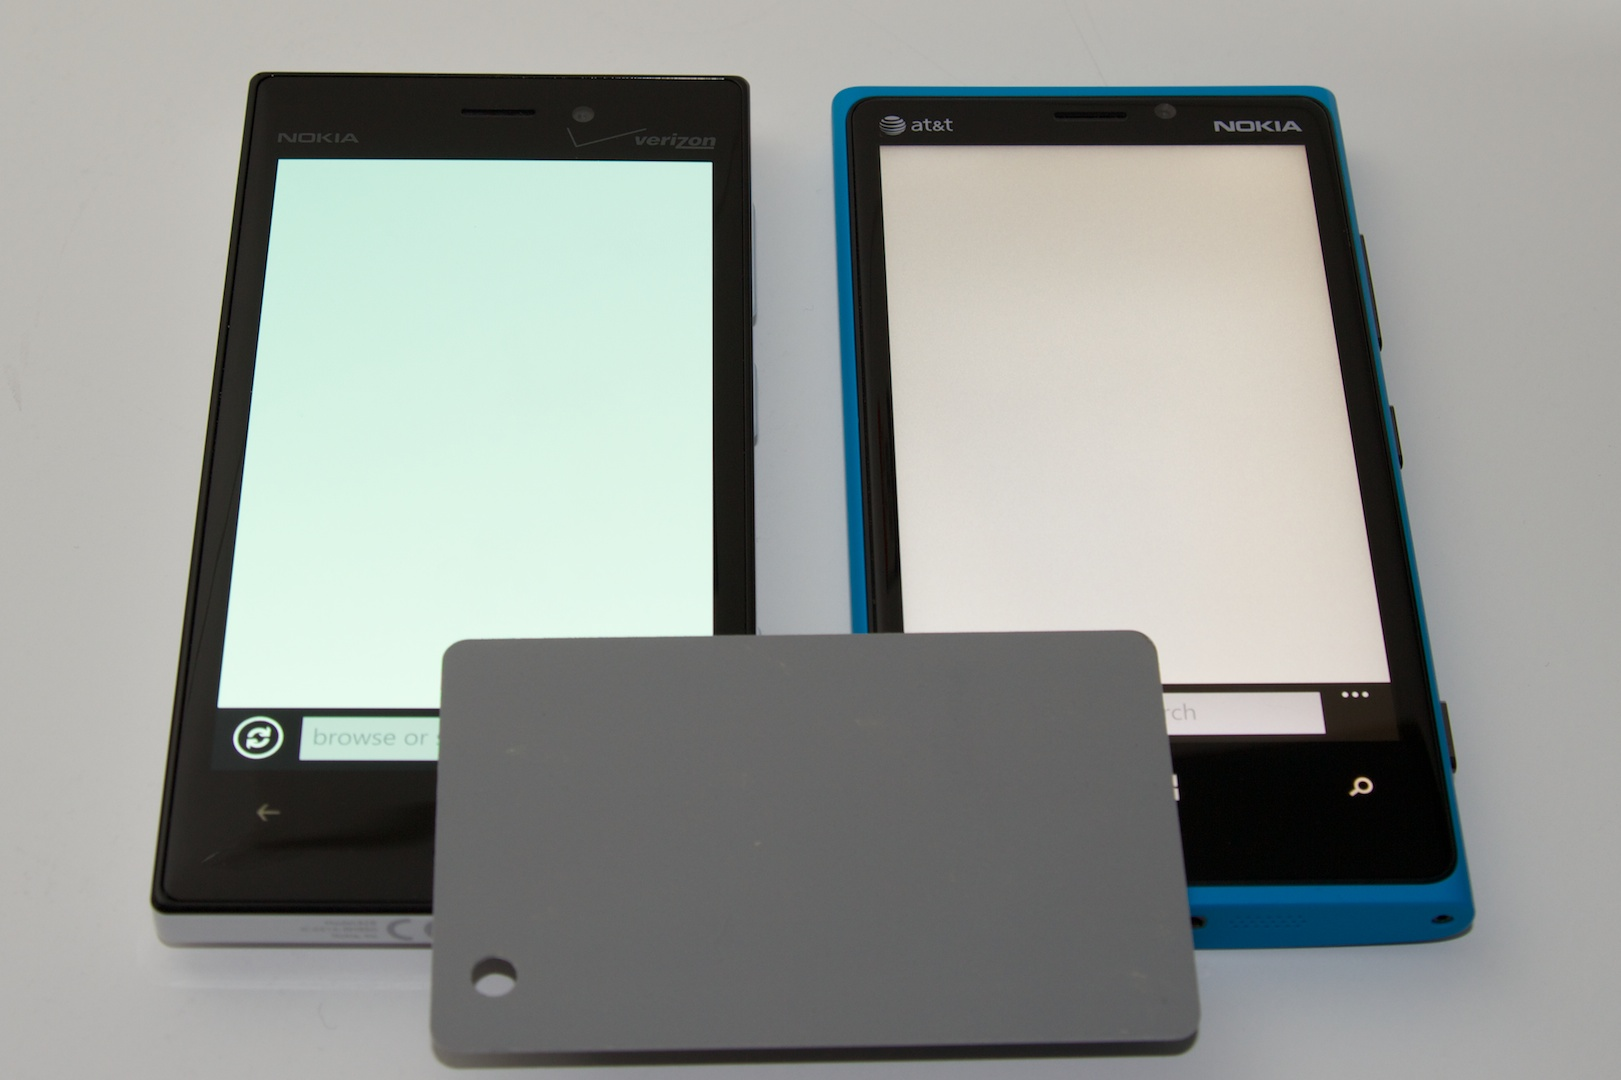 The Lumia 928's screen (left) takes on a blue-ish tint when viewed from even slight angles. Lumia 920 is at the right, and the 18 percent gray card is in foreground for reference.